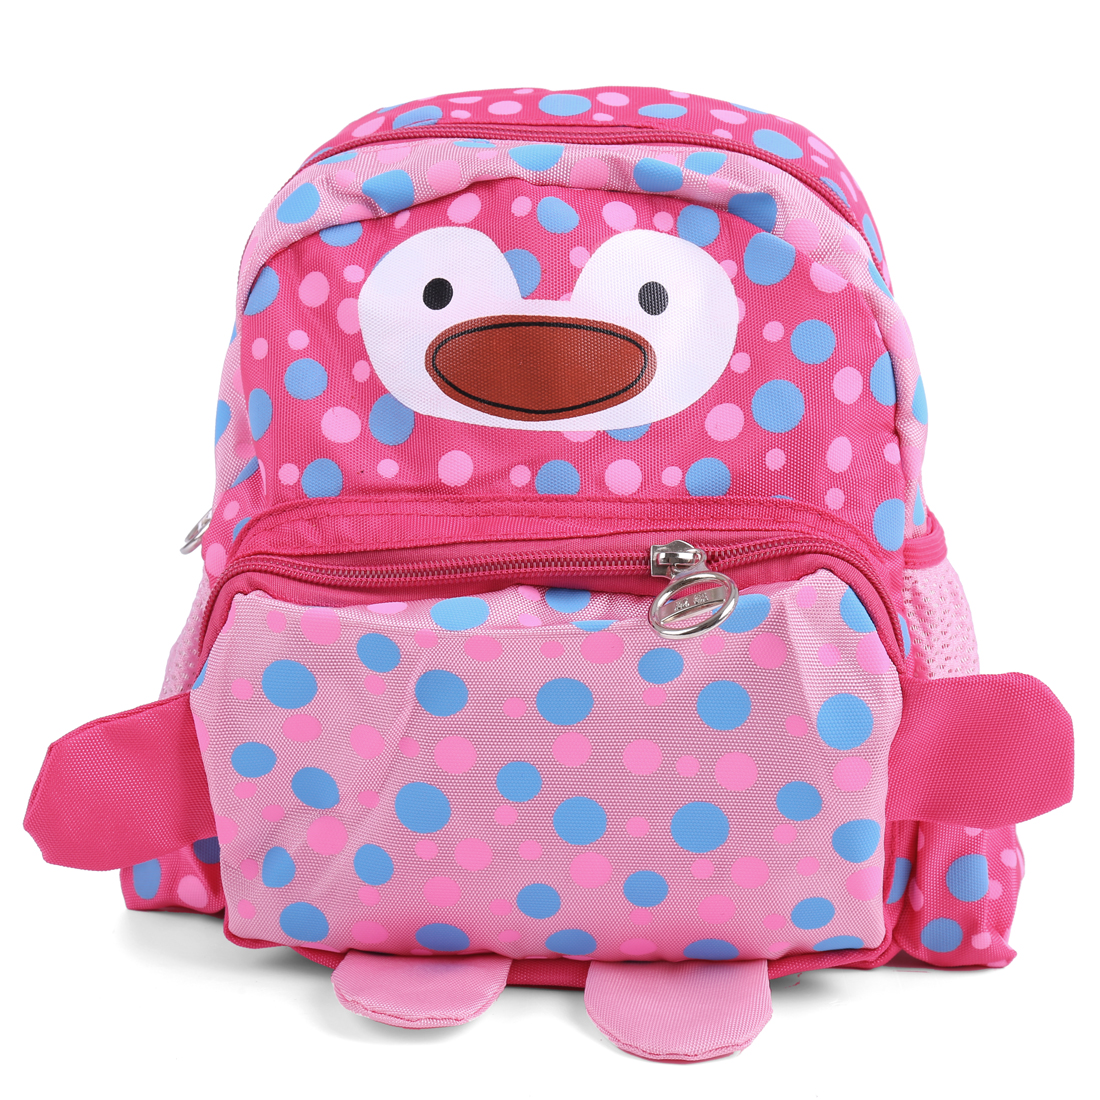 Kids Padded Straps Pouch Pocket Cartoon Backpacks Fuchsia Pink